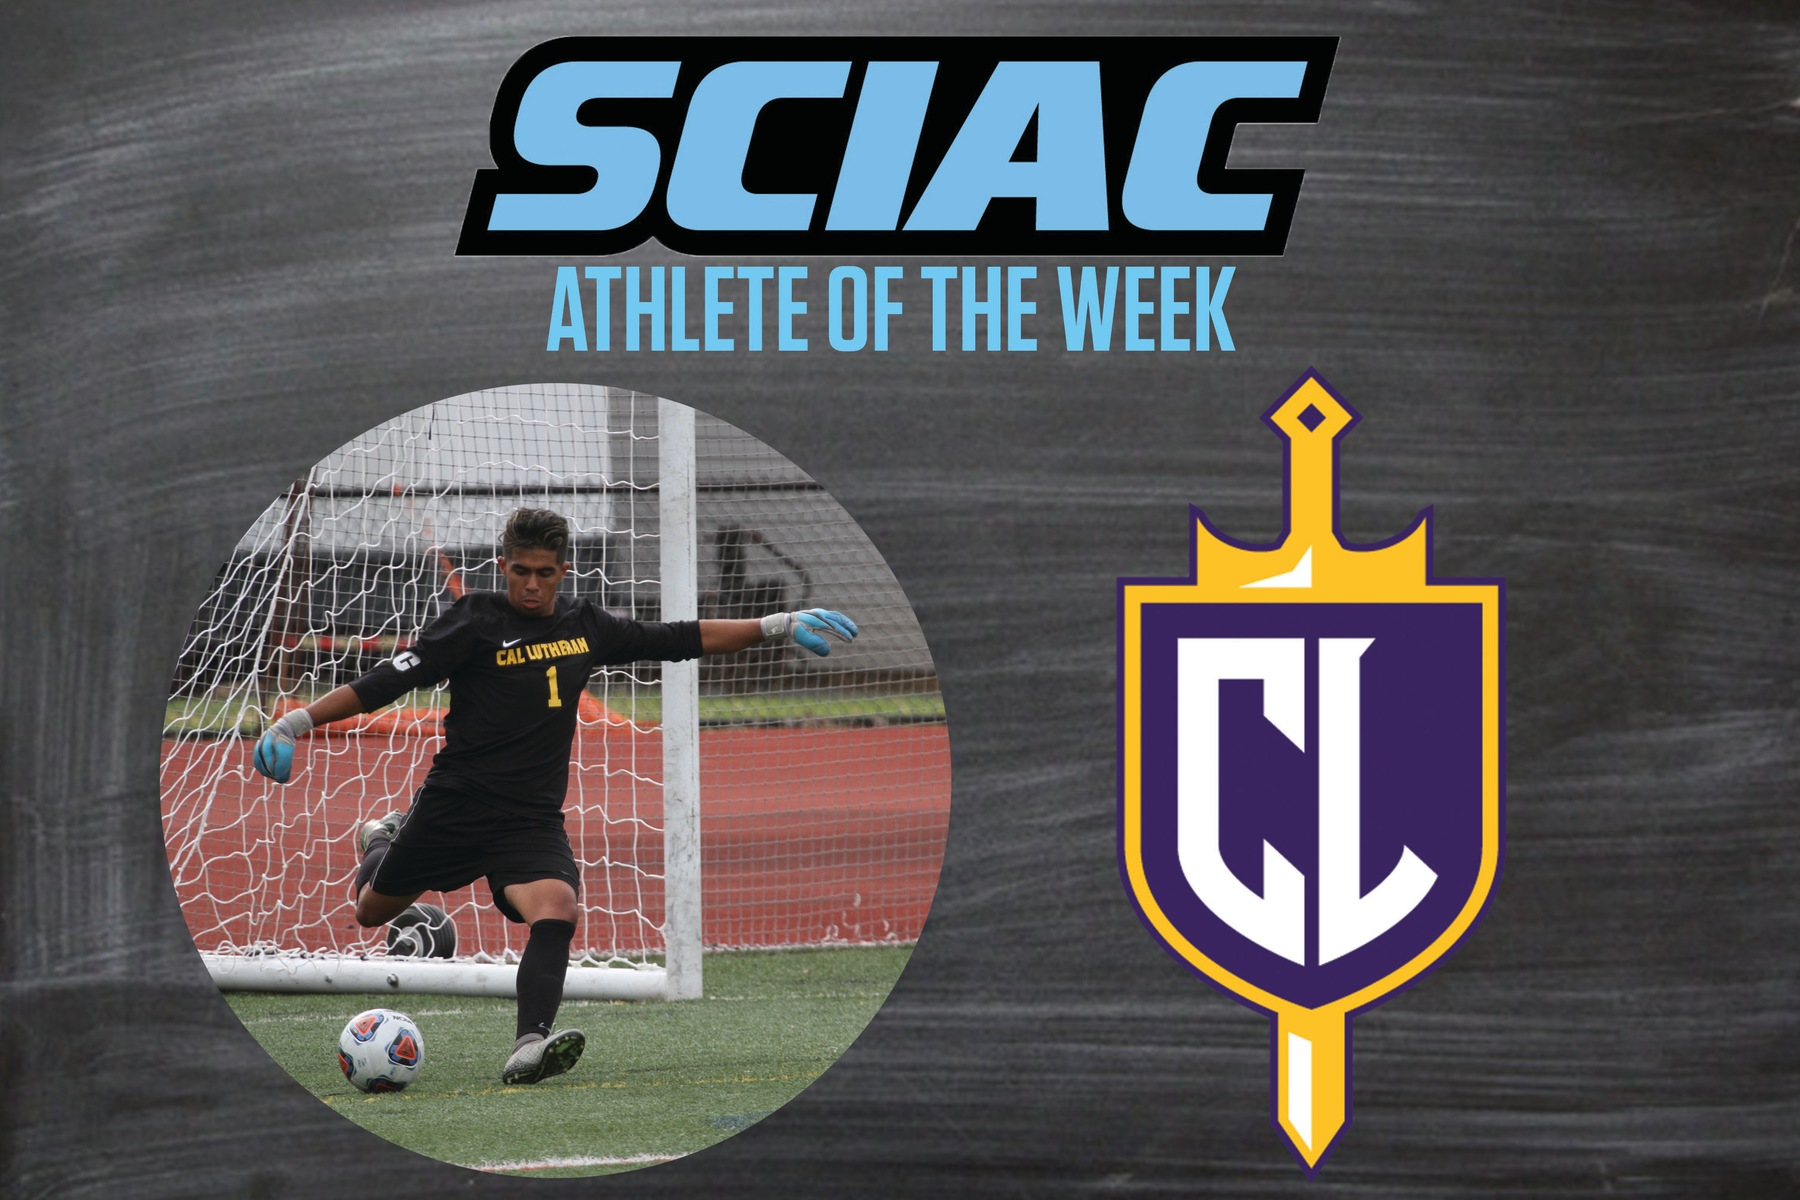 Garcia Earns SCIAC AOW Honors